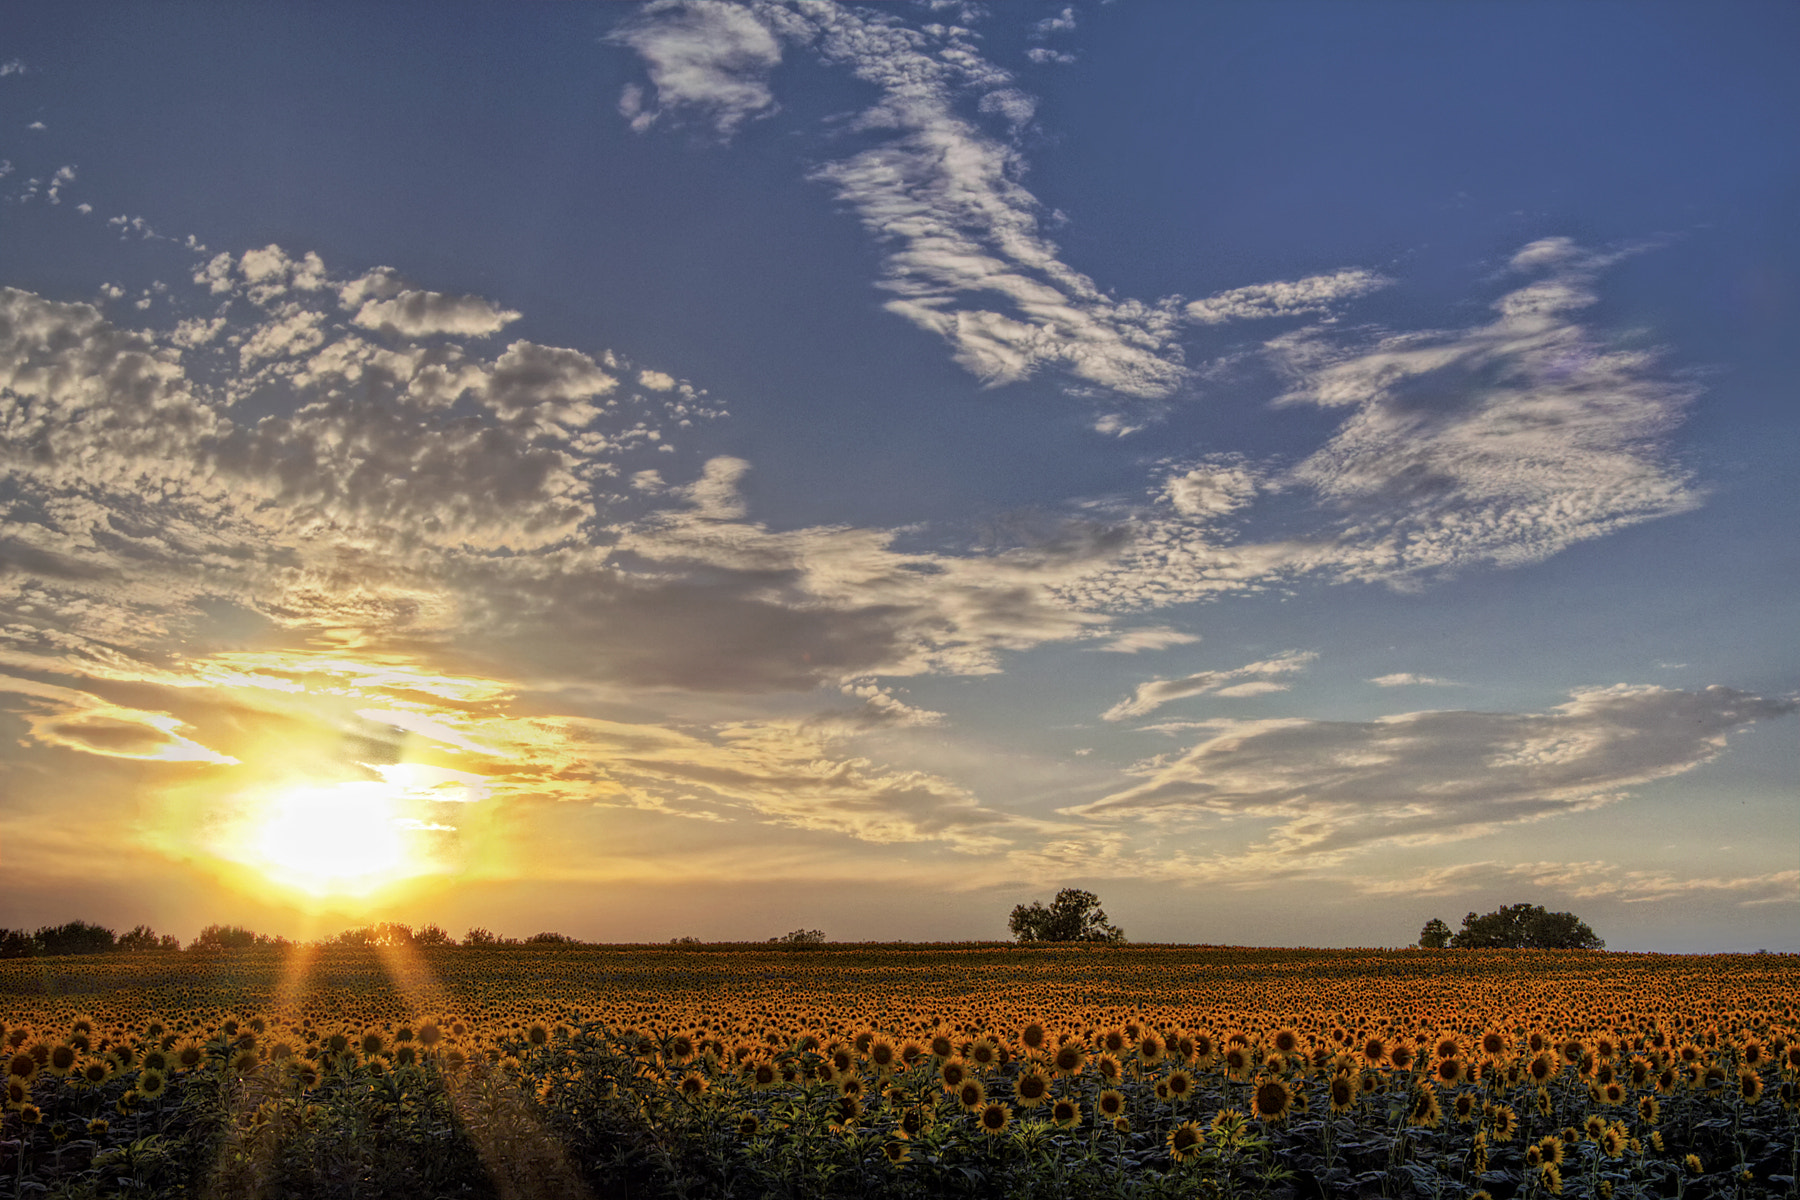 """Photograph """"Sunset sunflowers"""" by Scott Evers on 500px"""